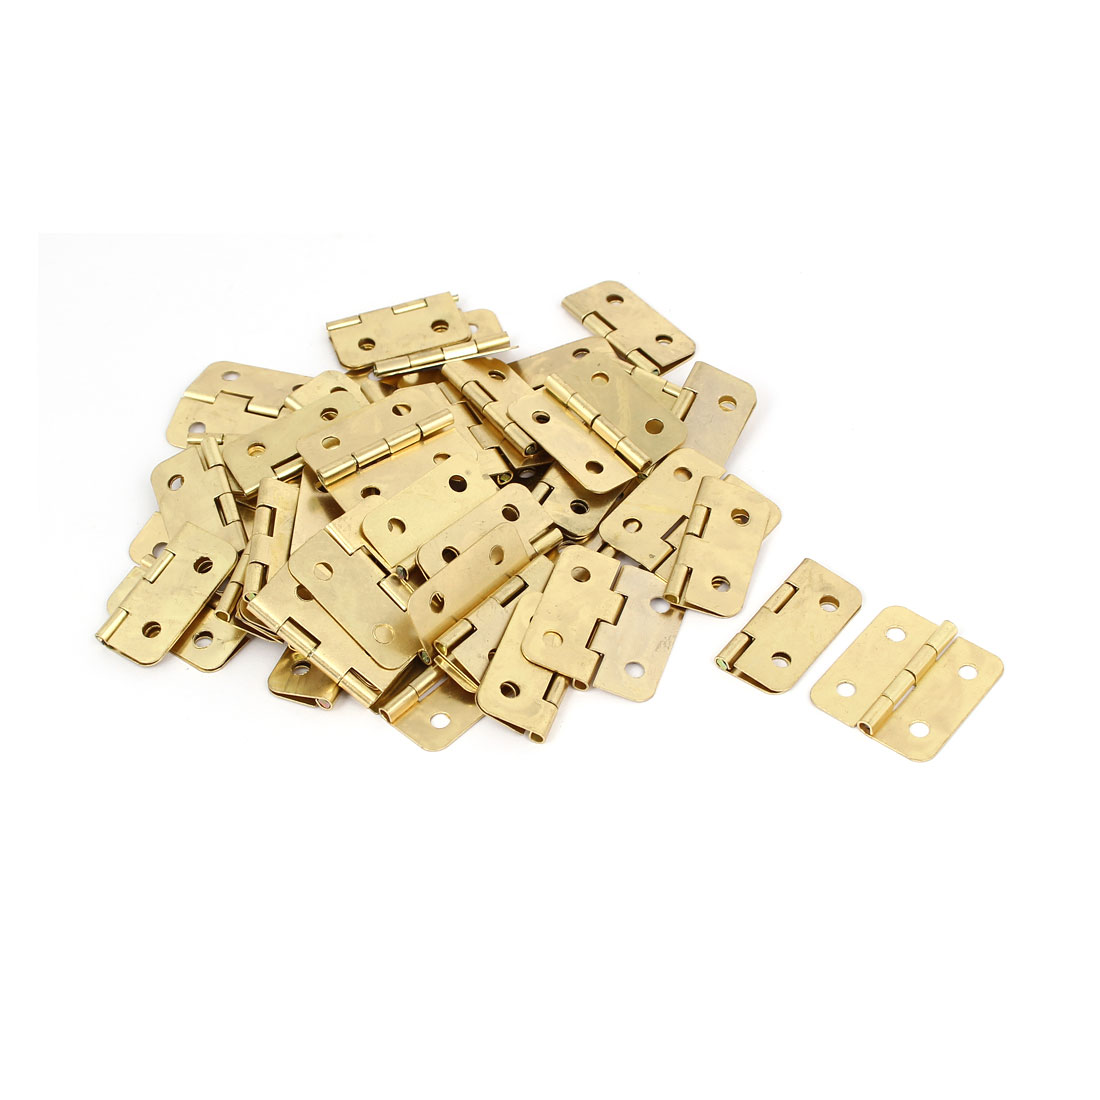 "Cabinet Drawer Cupboard Door Metal Butt Hinges Gold Tone 1.2"" Length 50PCS"